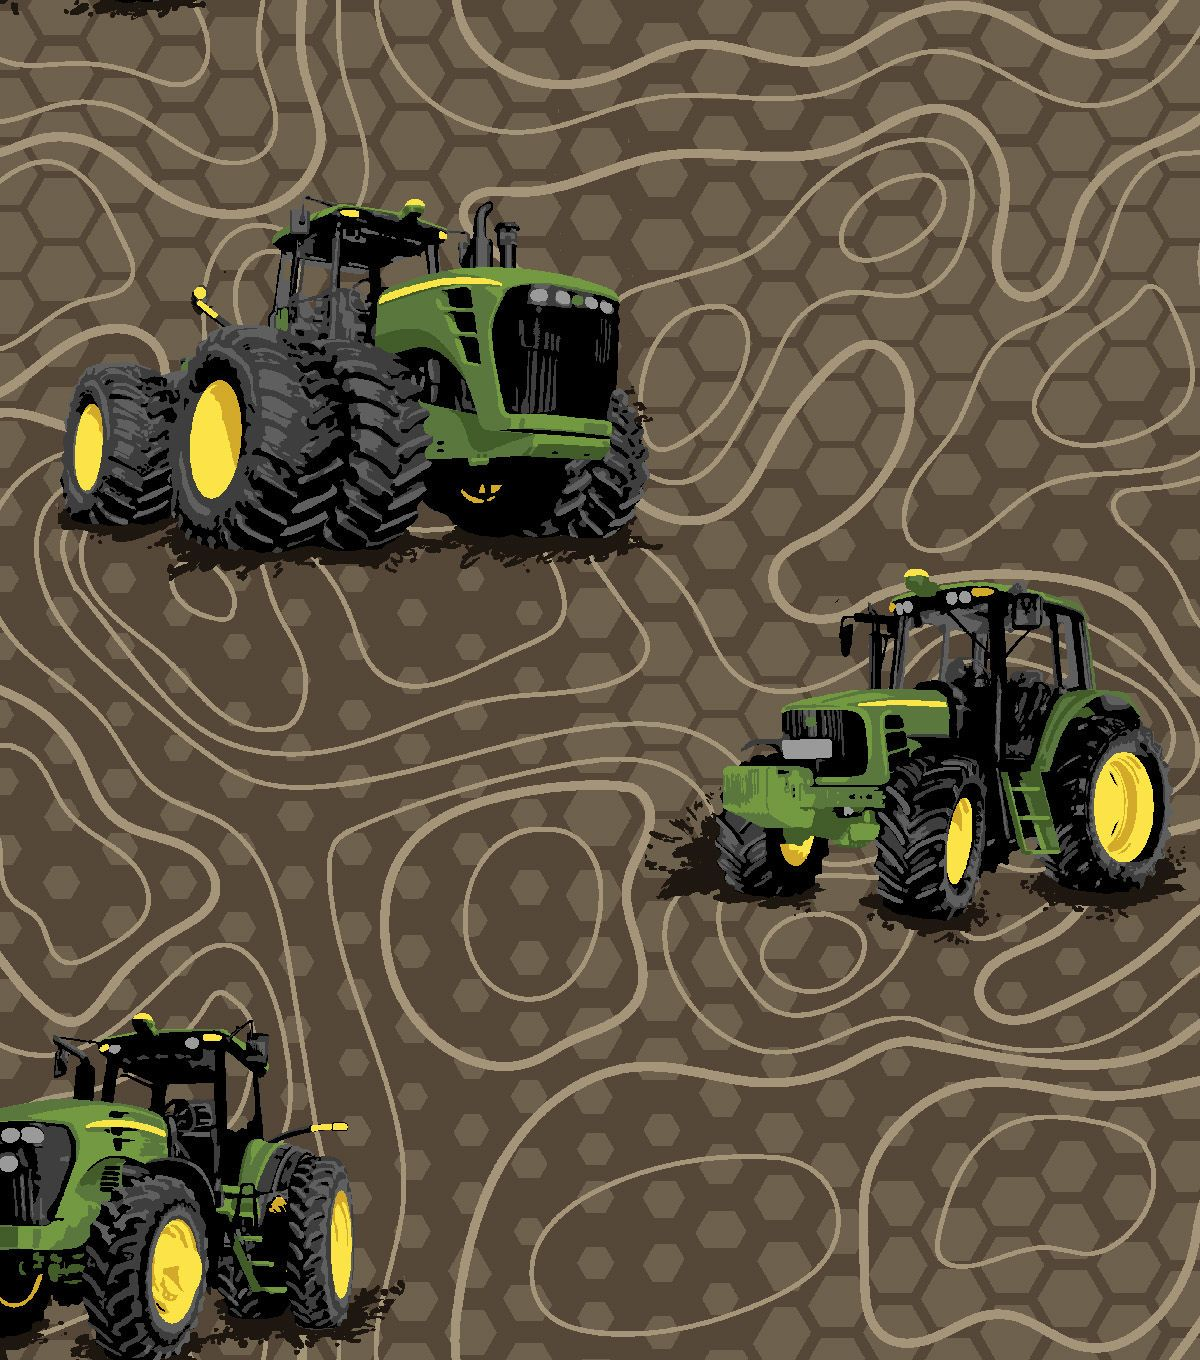 John deere fleece fabric uufarm land john deere fabrics and